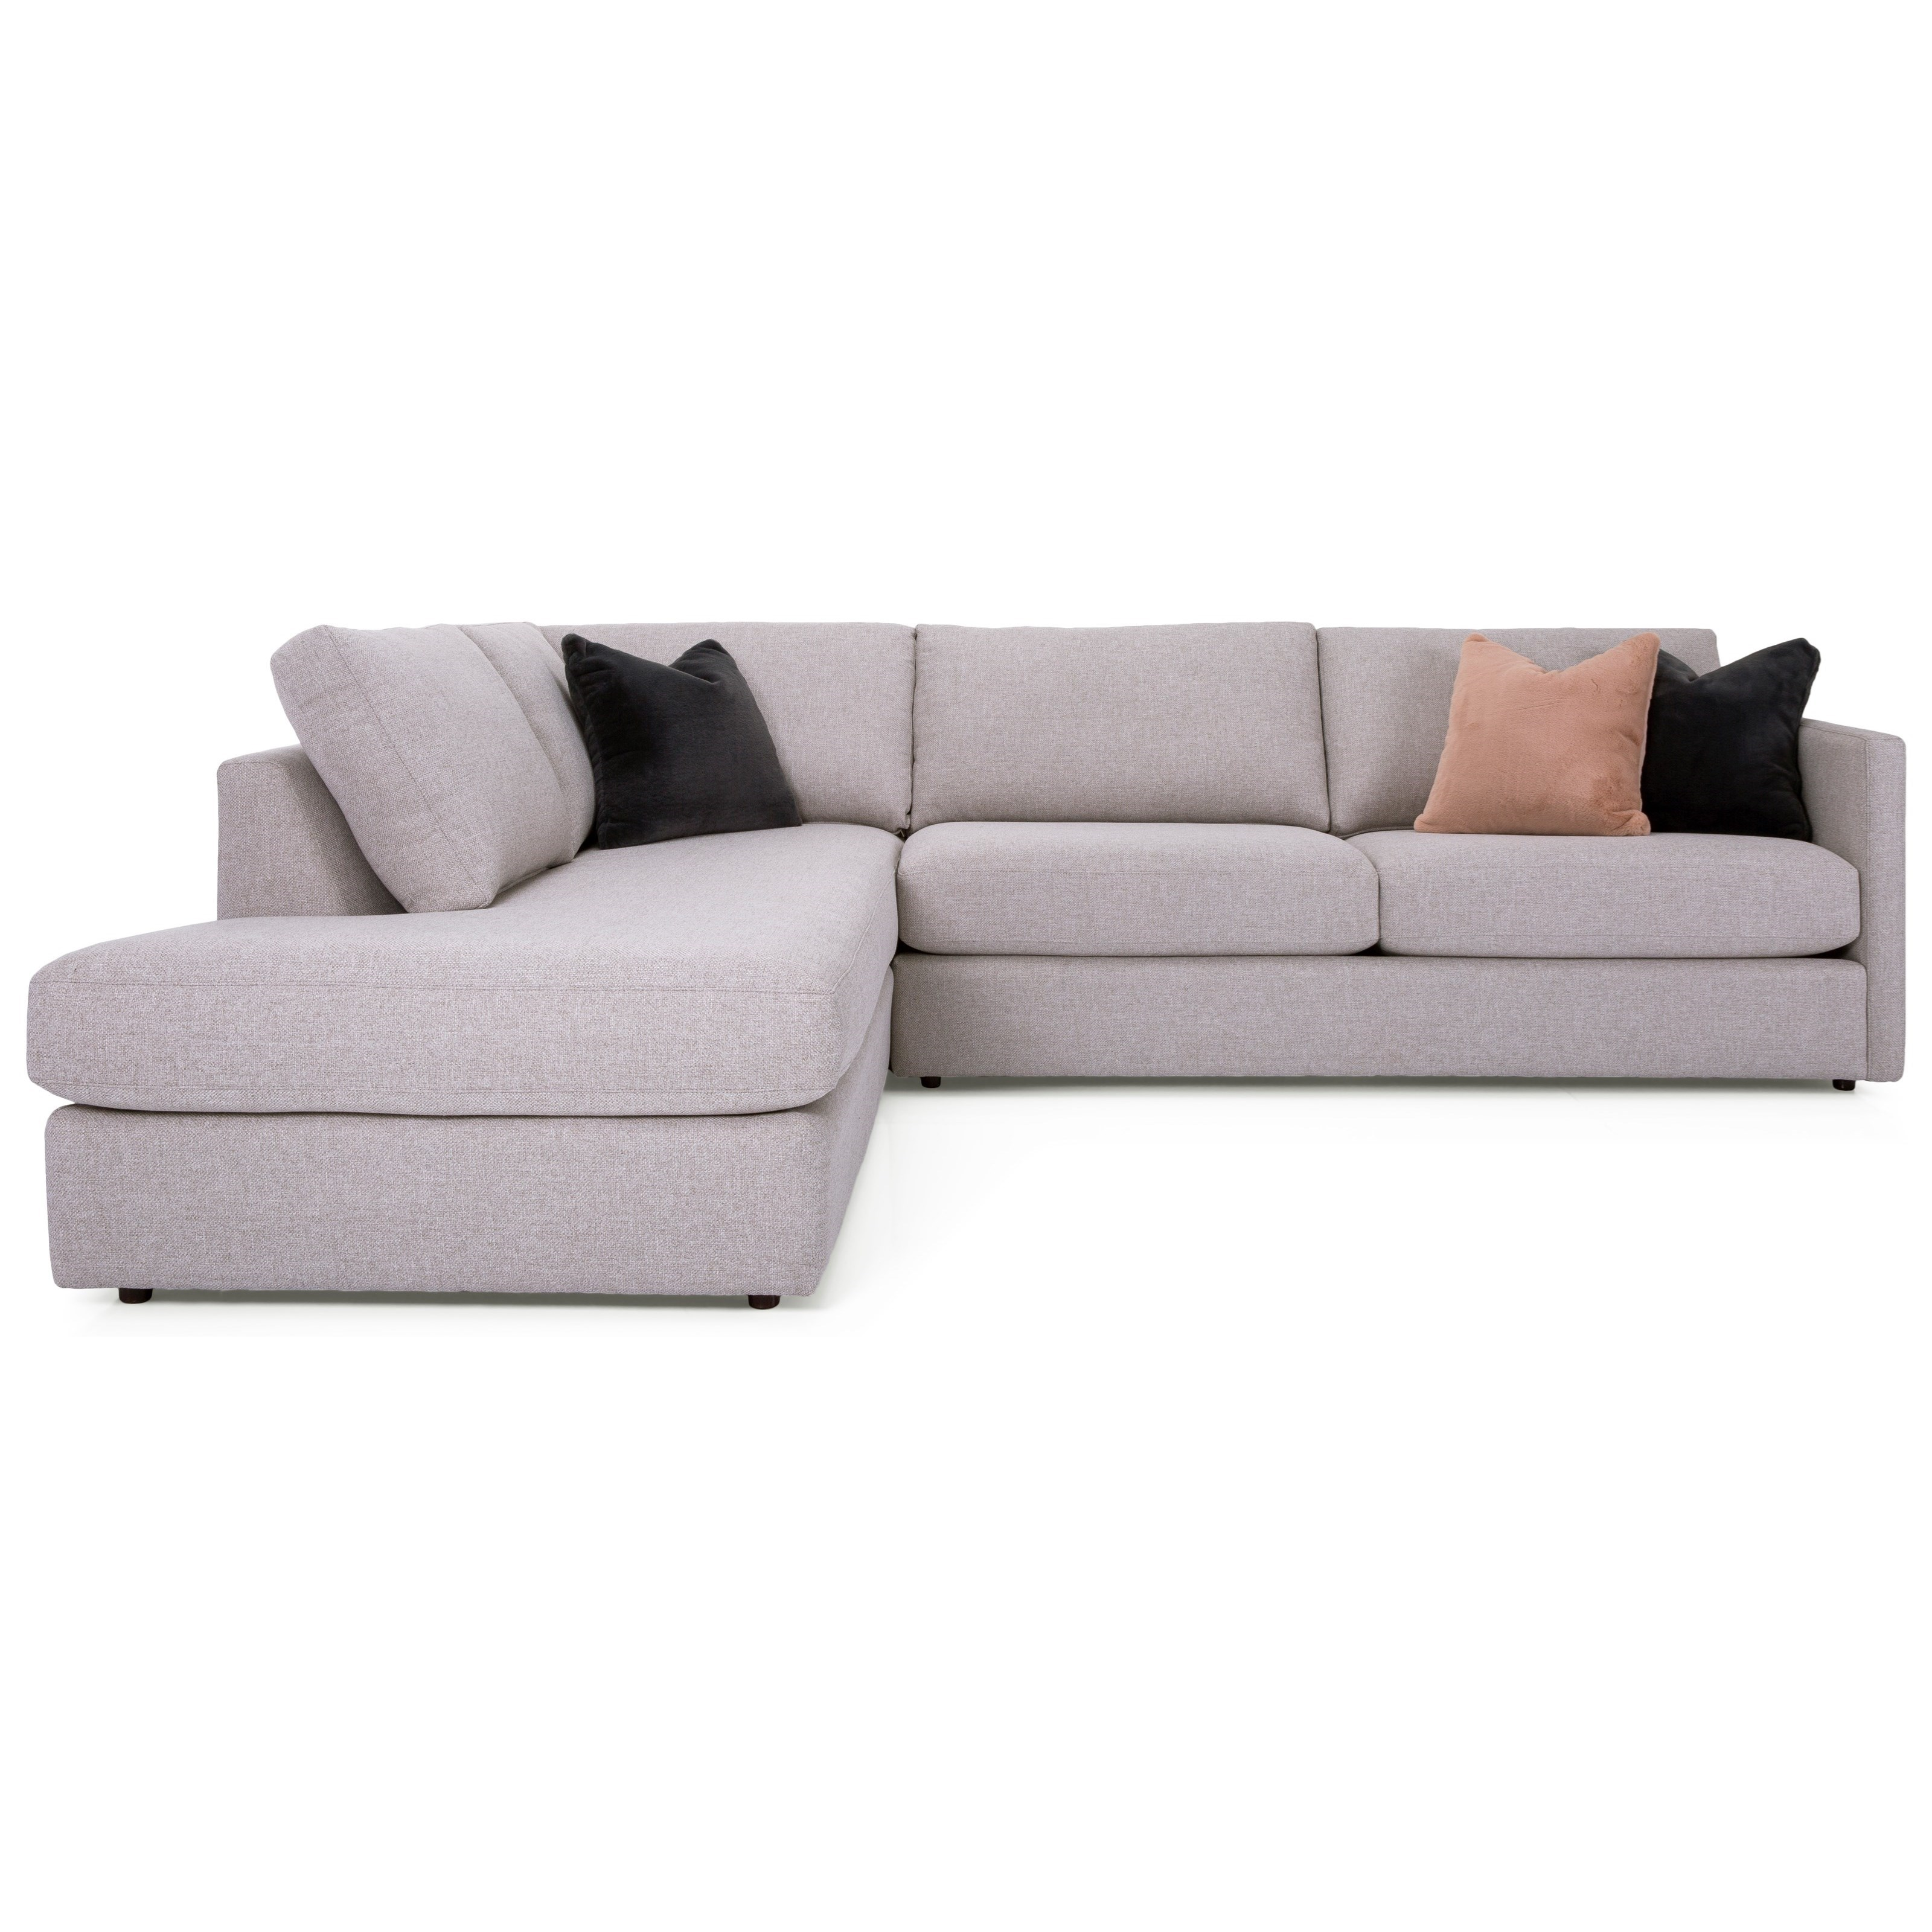 2068 Sectional with Chaise by Decor-Rest at Upper Room Home Furnishings